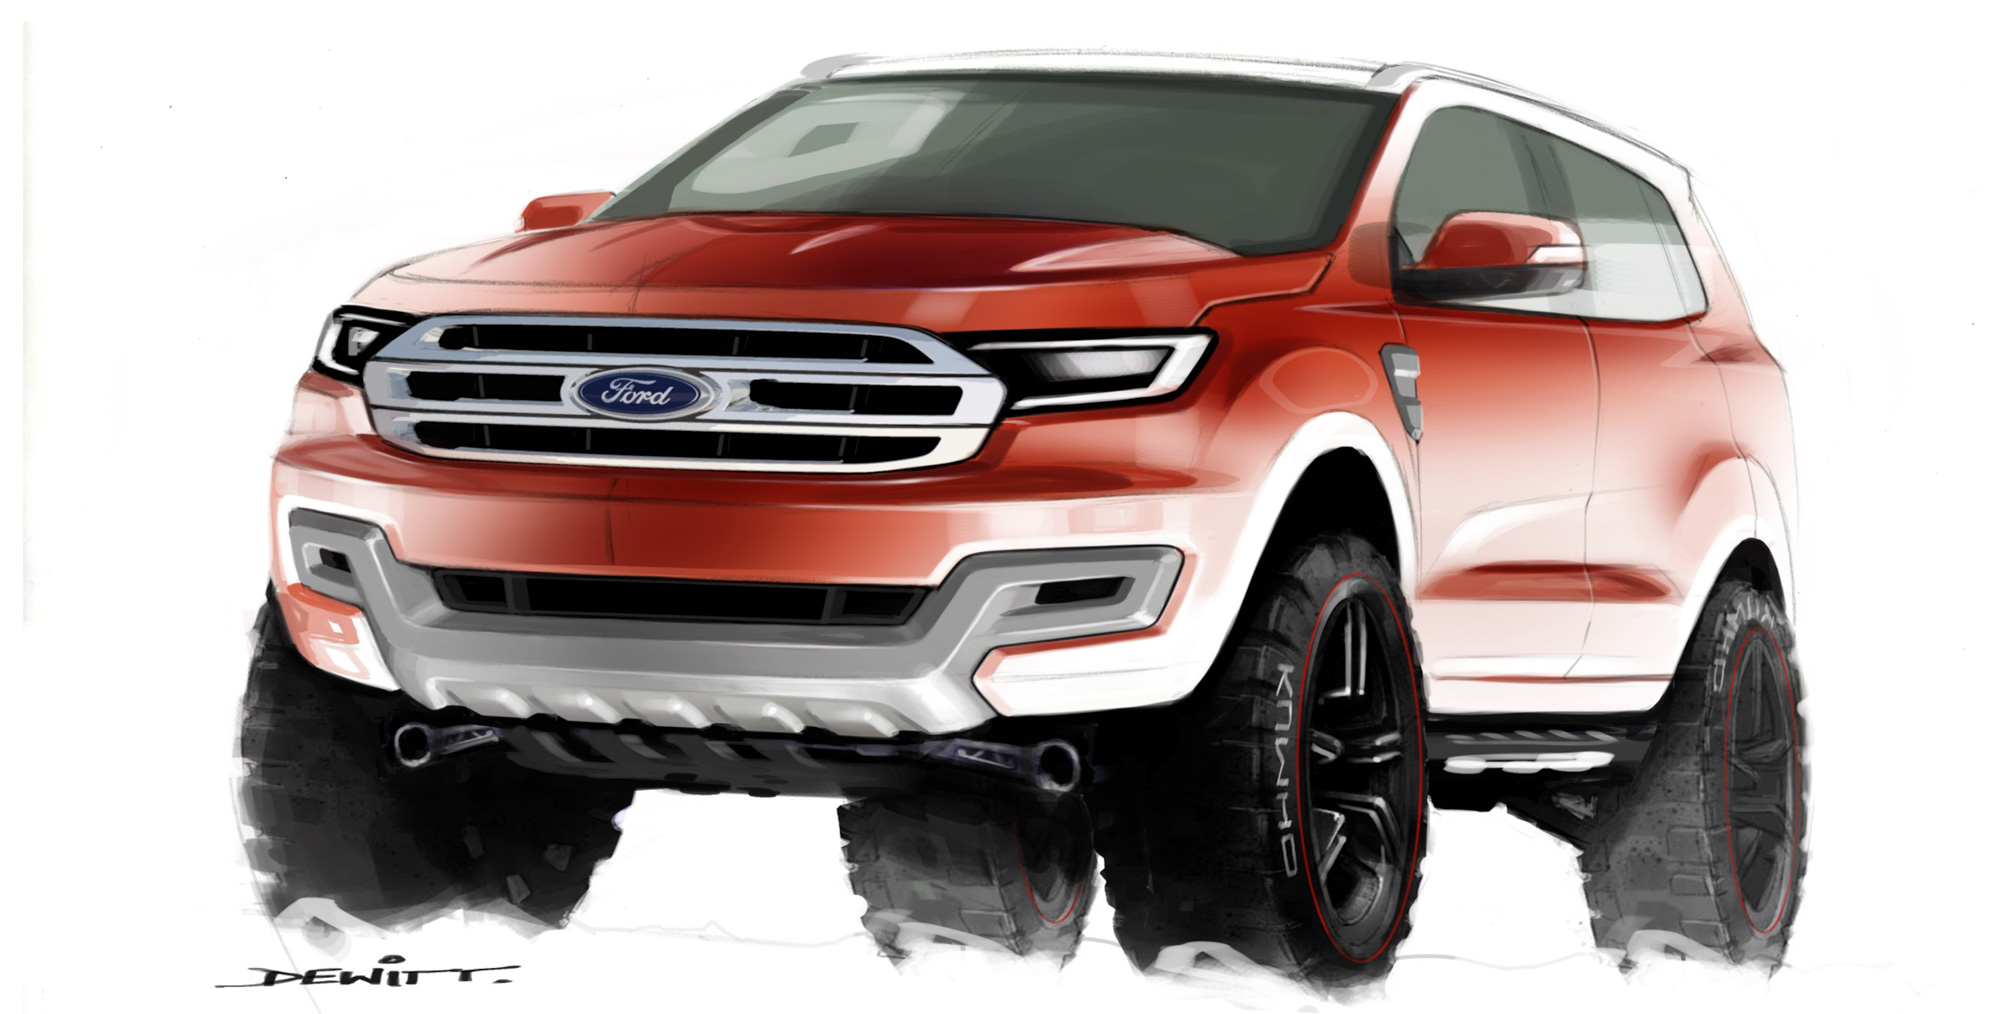 You Ever Imagined New Ford >> Ford Everest 2018 | 2018, 2019, 2020 Ford Cars